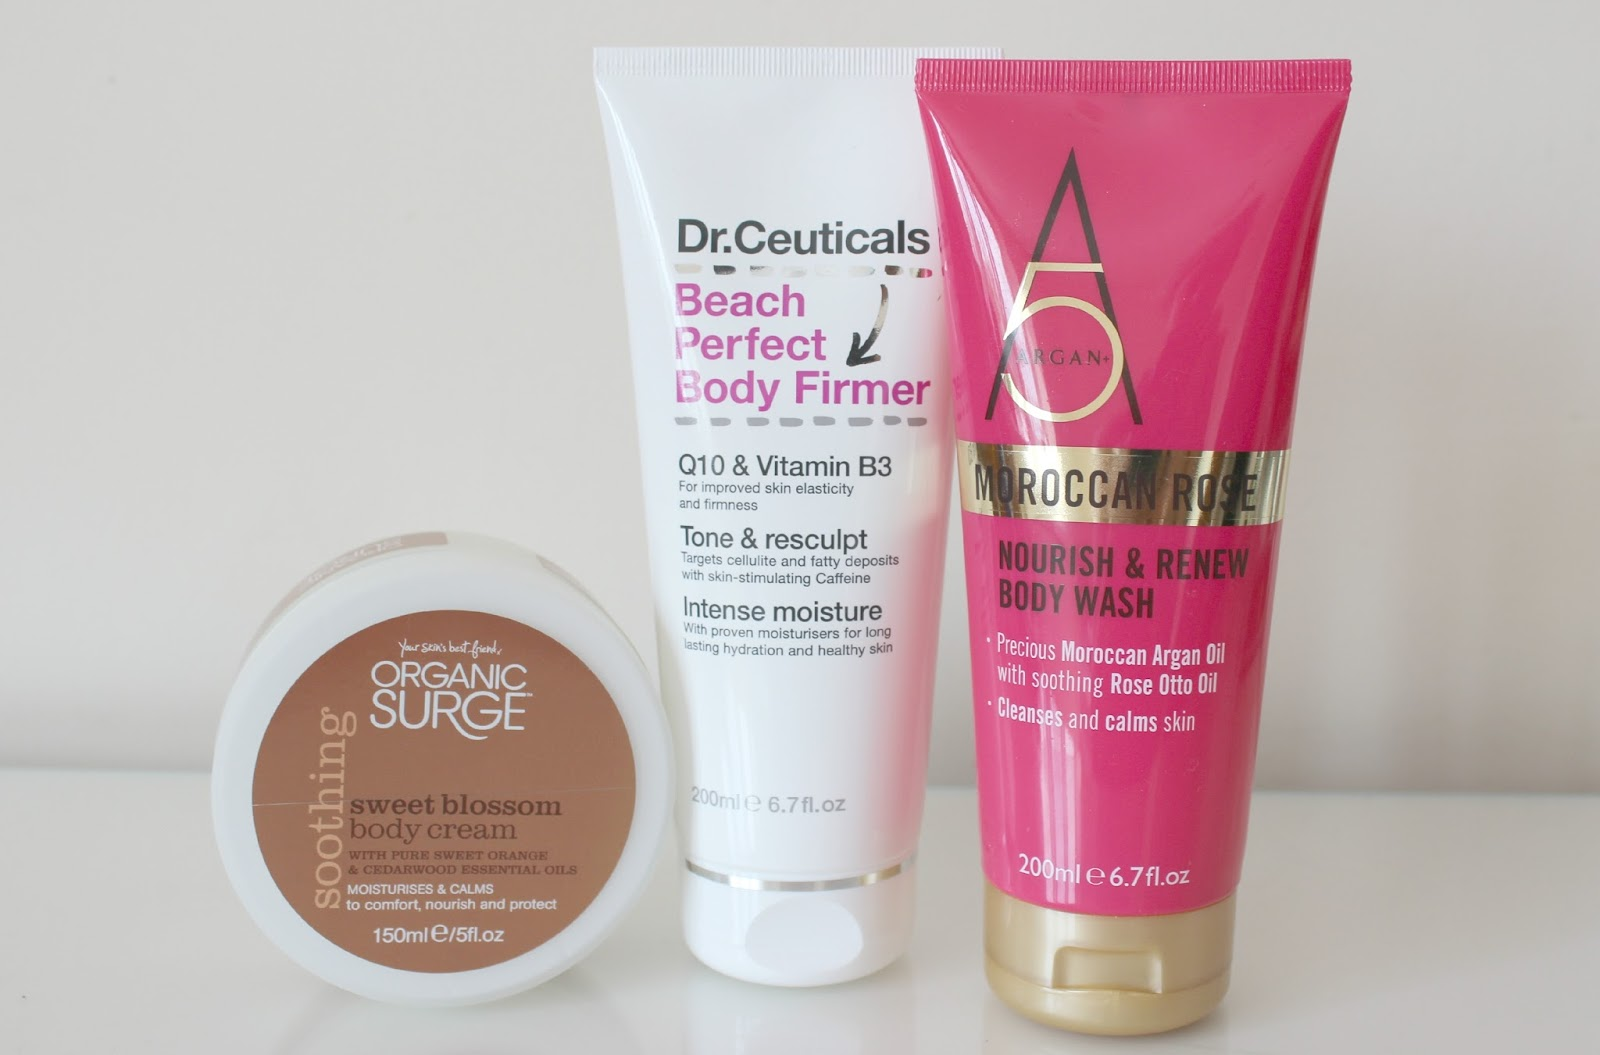 A picture of Dr. Ceuticals Beach Perfect Body Firmer, Organic Surge Soothing Sweet Blossom Body Cream and Argan+ 5 Moroccan Rose Nourish & Renew Body Wash.